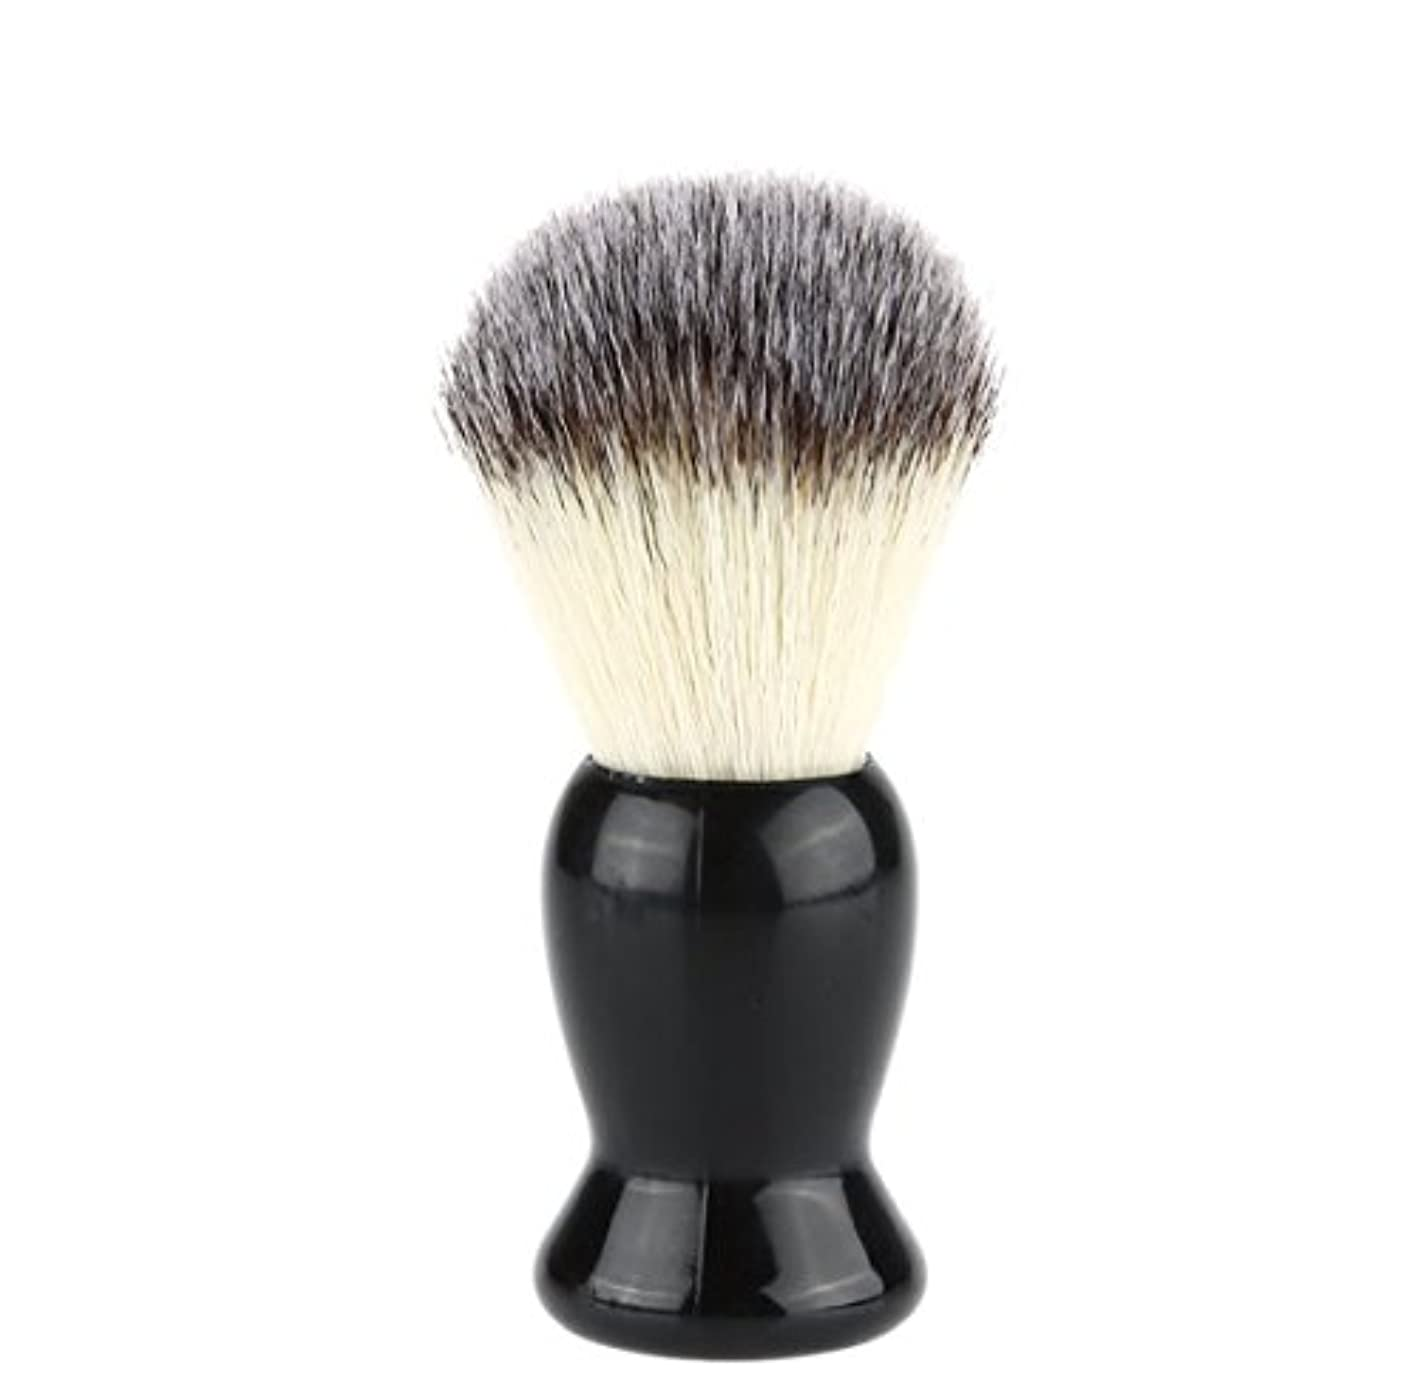 Superb Barber Salon Shaving Brush Black Handle Face Beard Cleaning Men Shaving Razor Brush Cleaning Appliance...